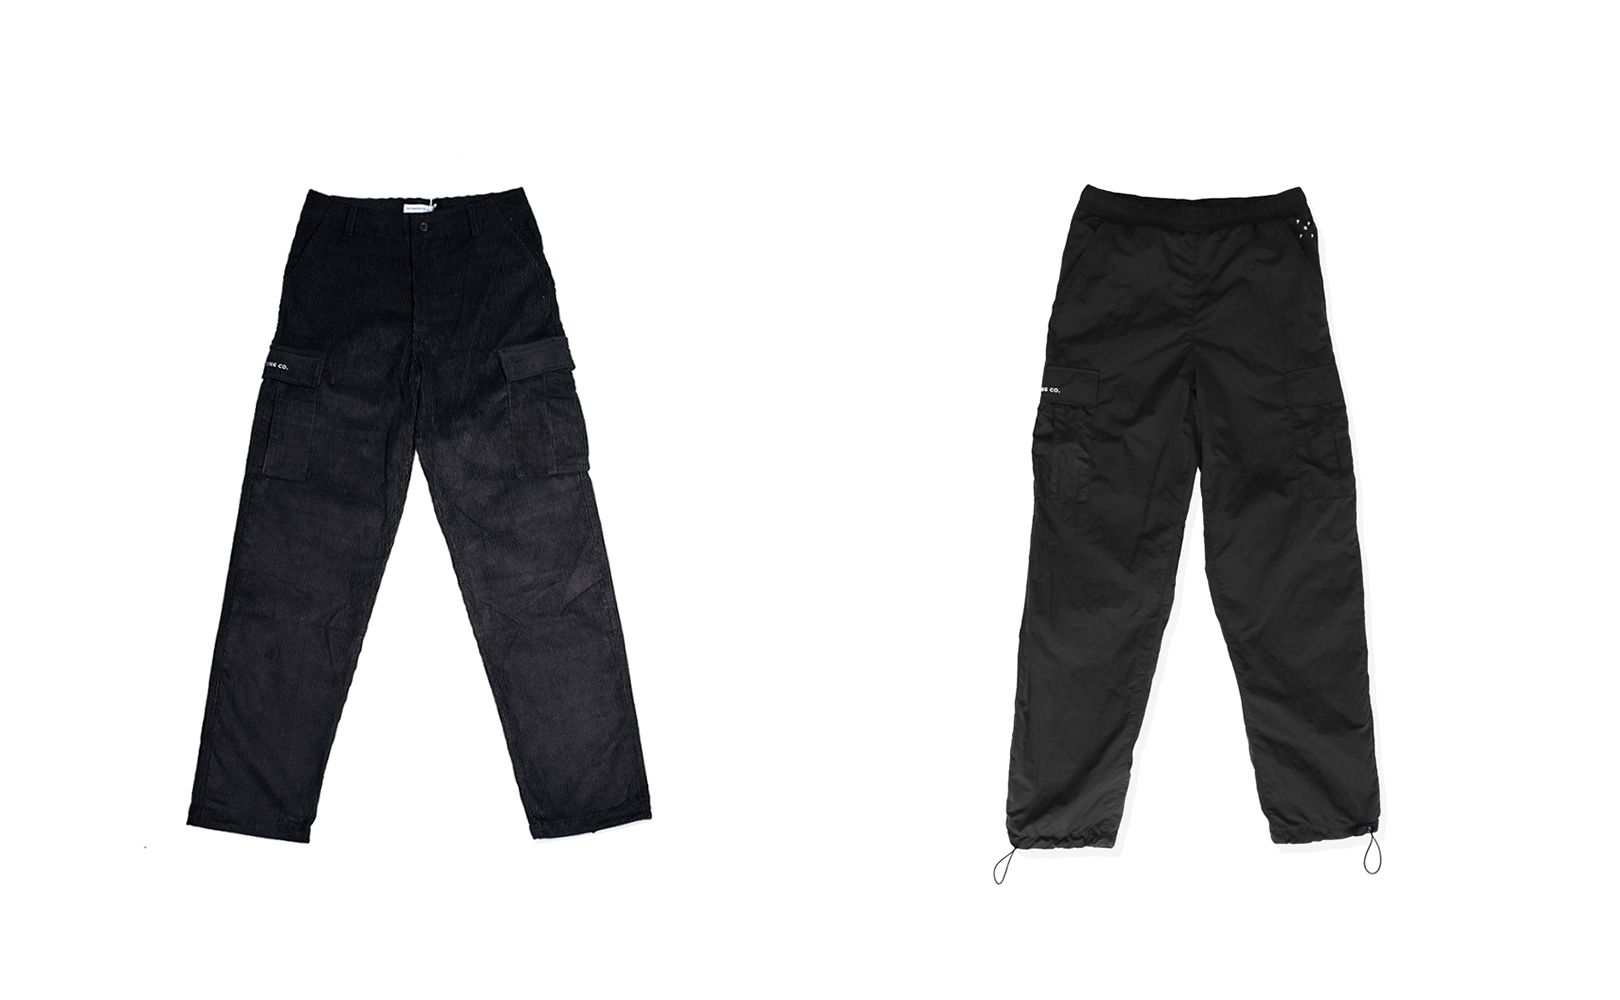 pop-trading-company-aw17-product-5-cord-cargo-track-pants